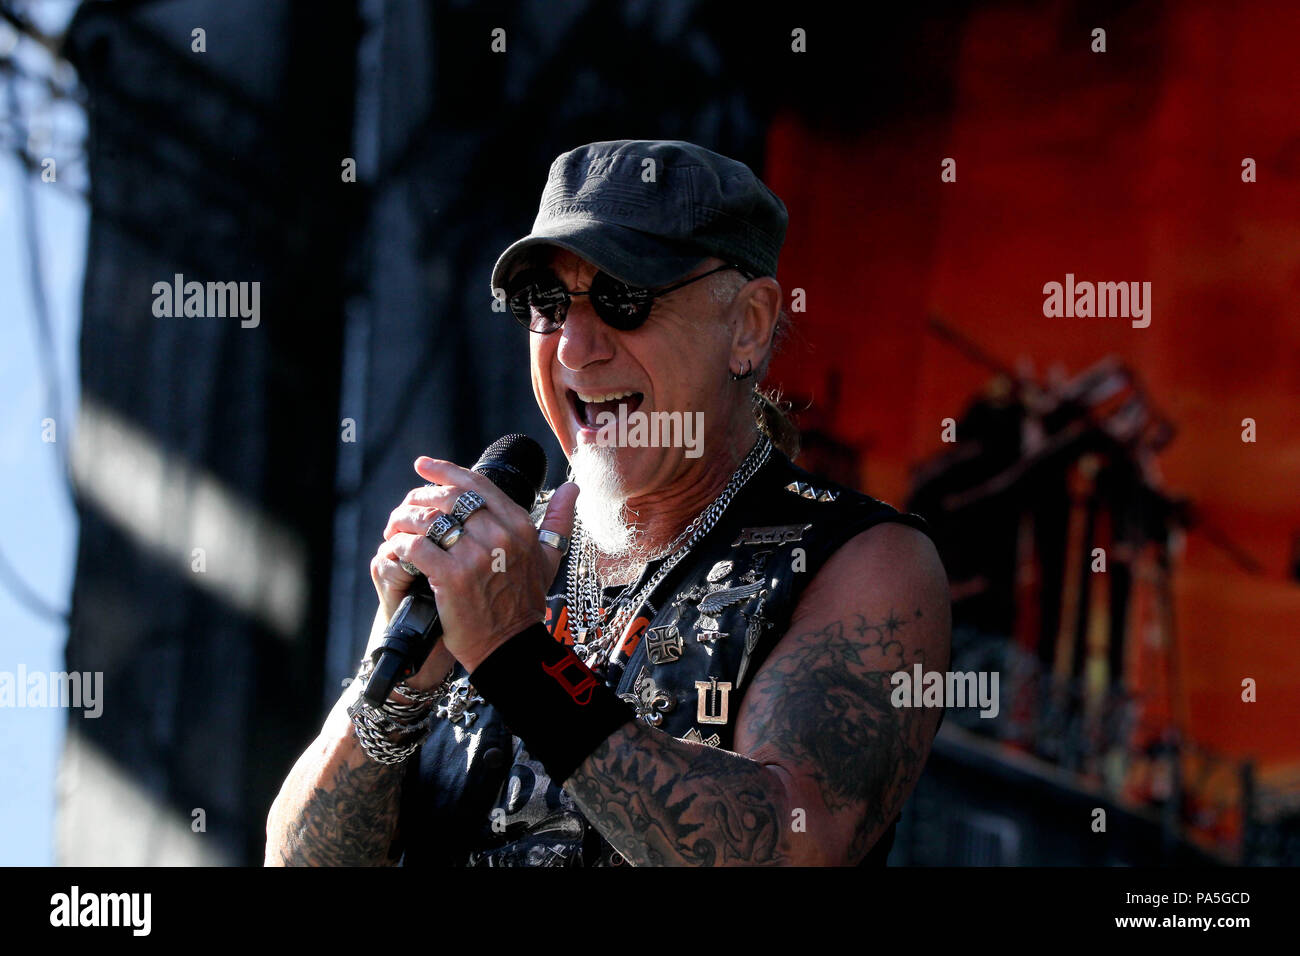 Vocalist Mark Tornillo Of German Heavy Metal Group Accept Performing Live On Stage At Rockwave Festival in Terravibe park 37th km north of Athens. - Stock Image